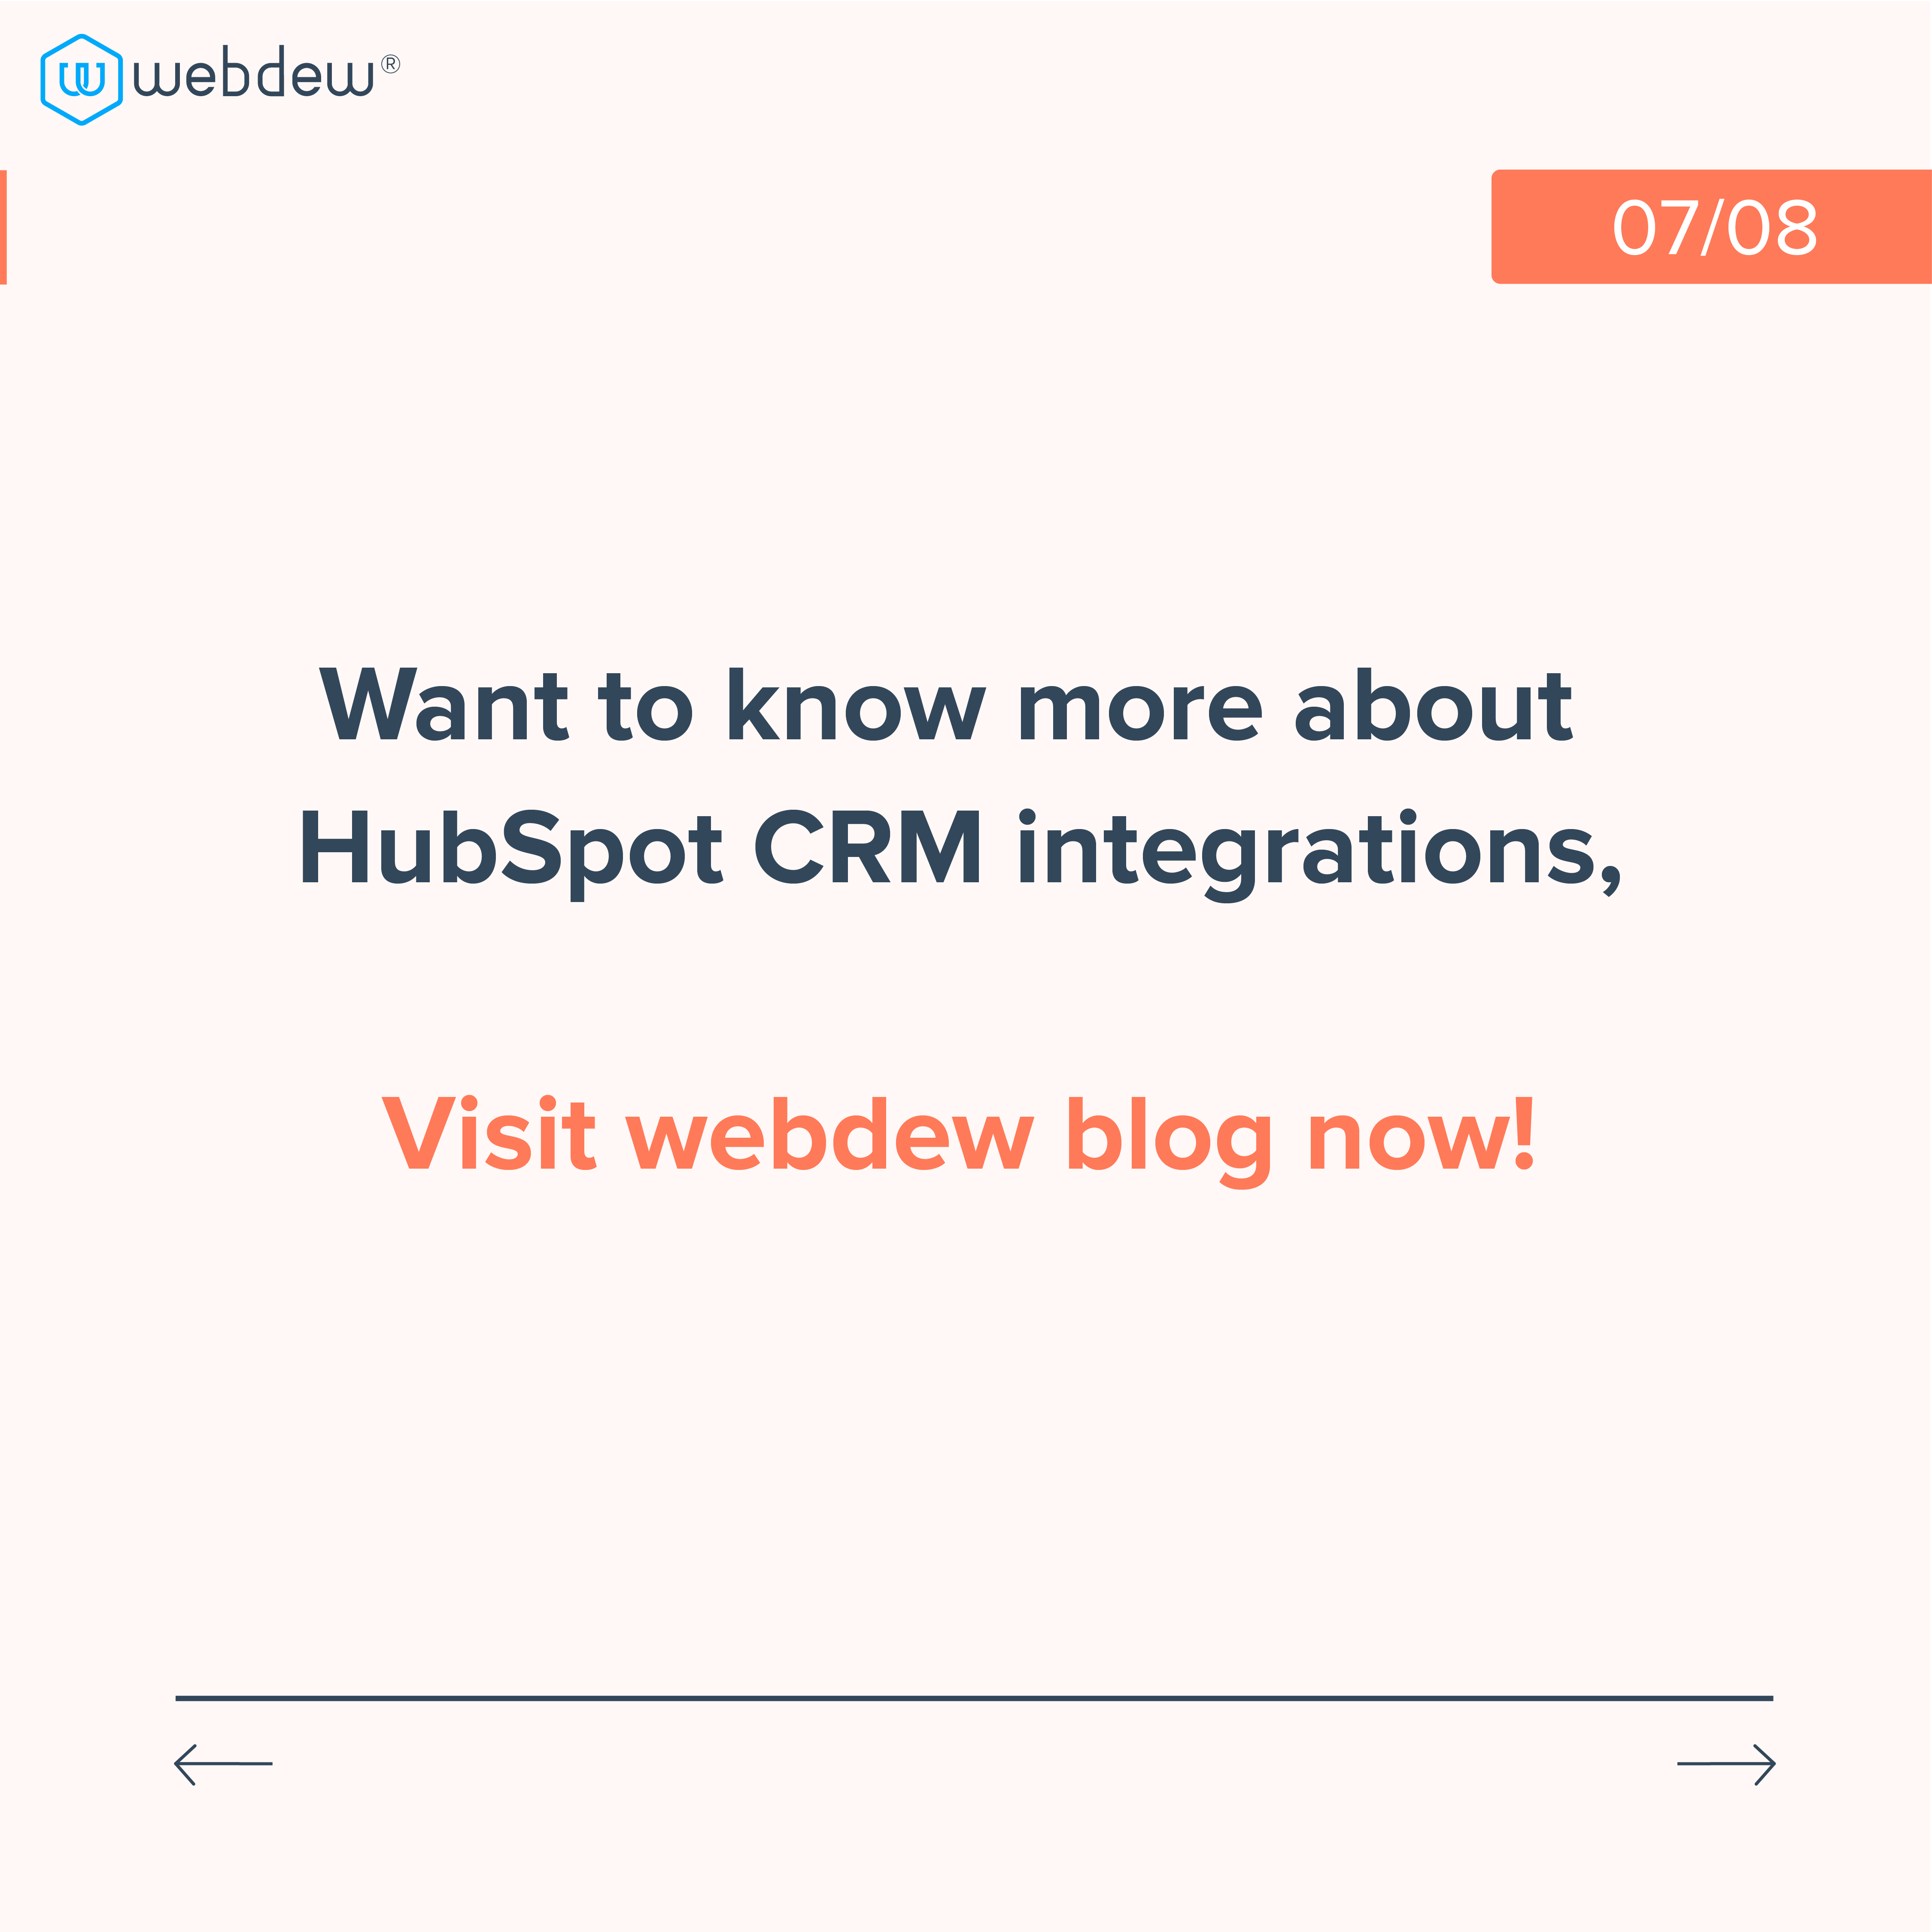 7- all you need to know about hubspot CRM integration in one guide-07